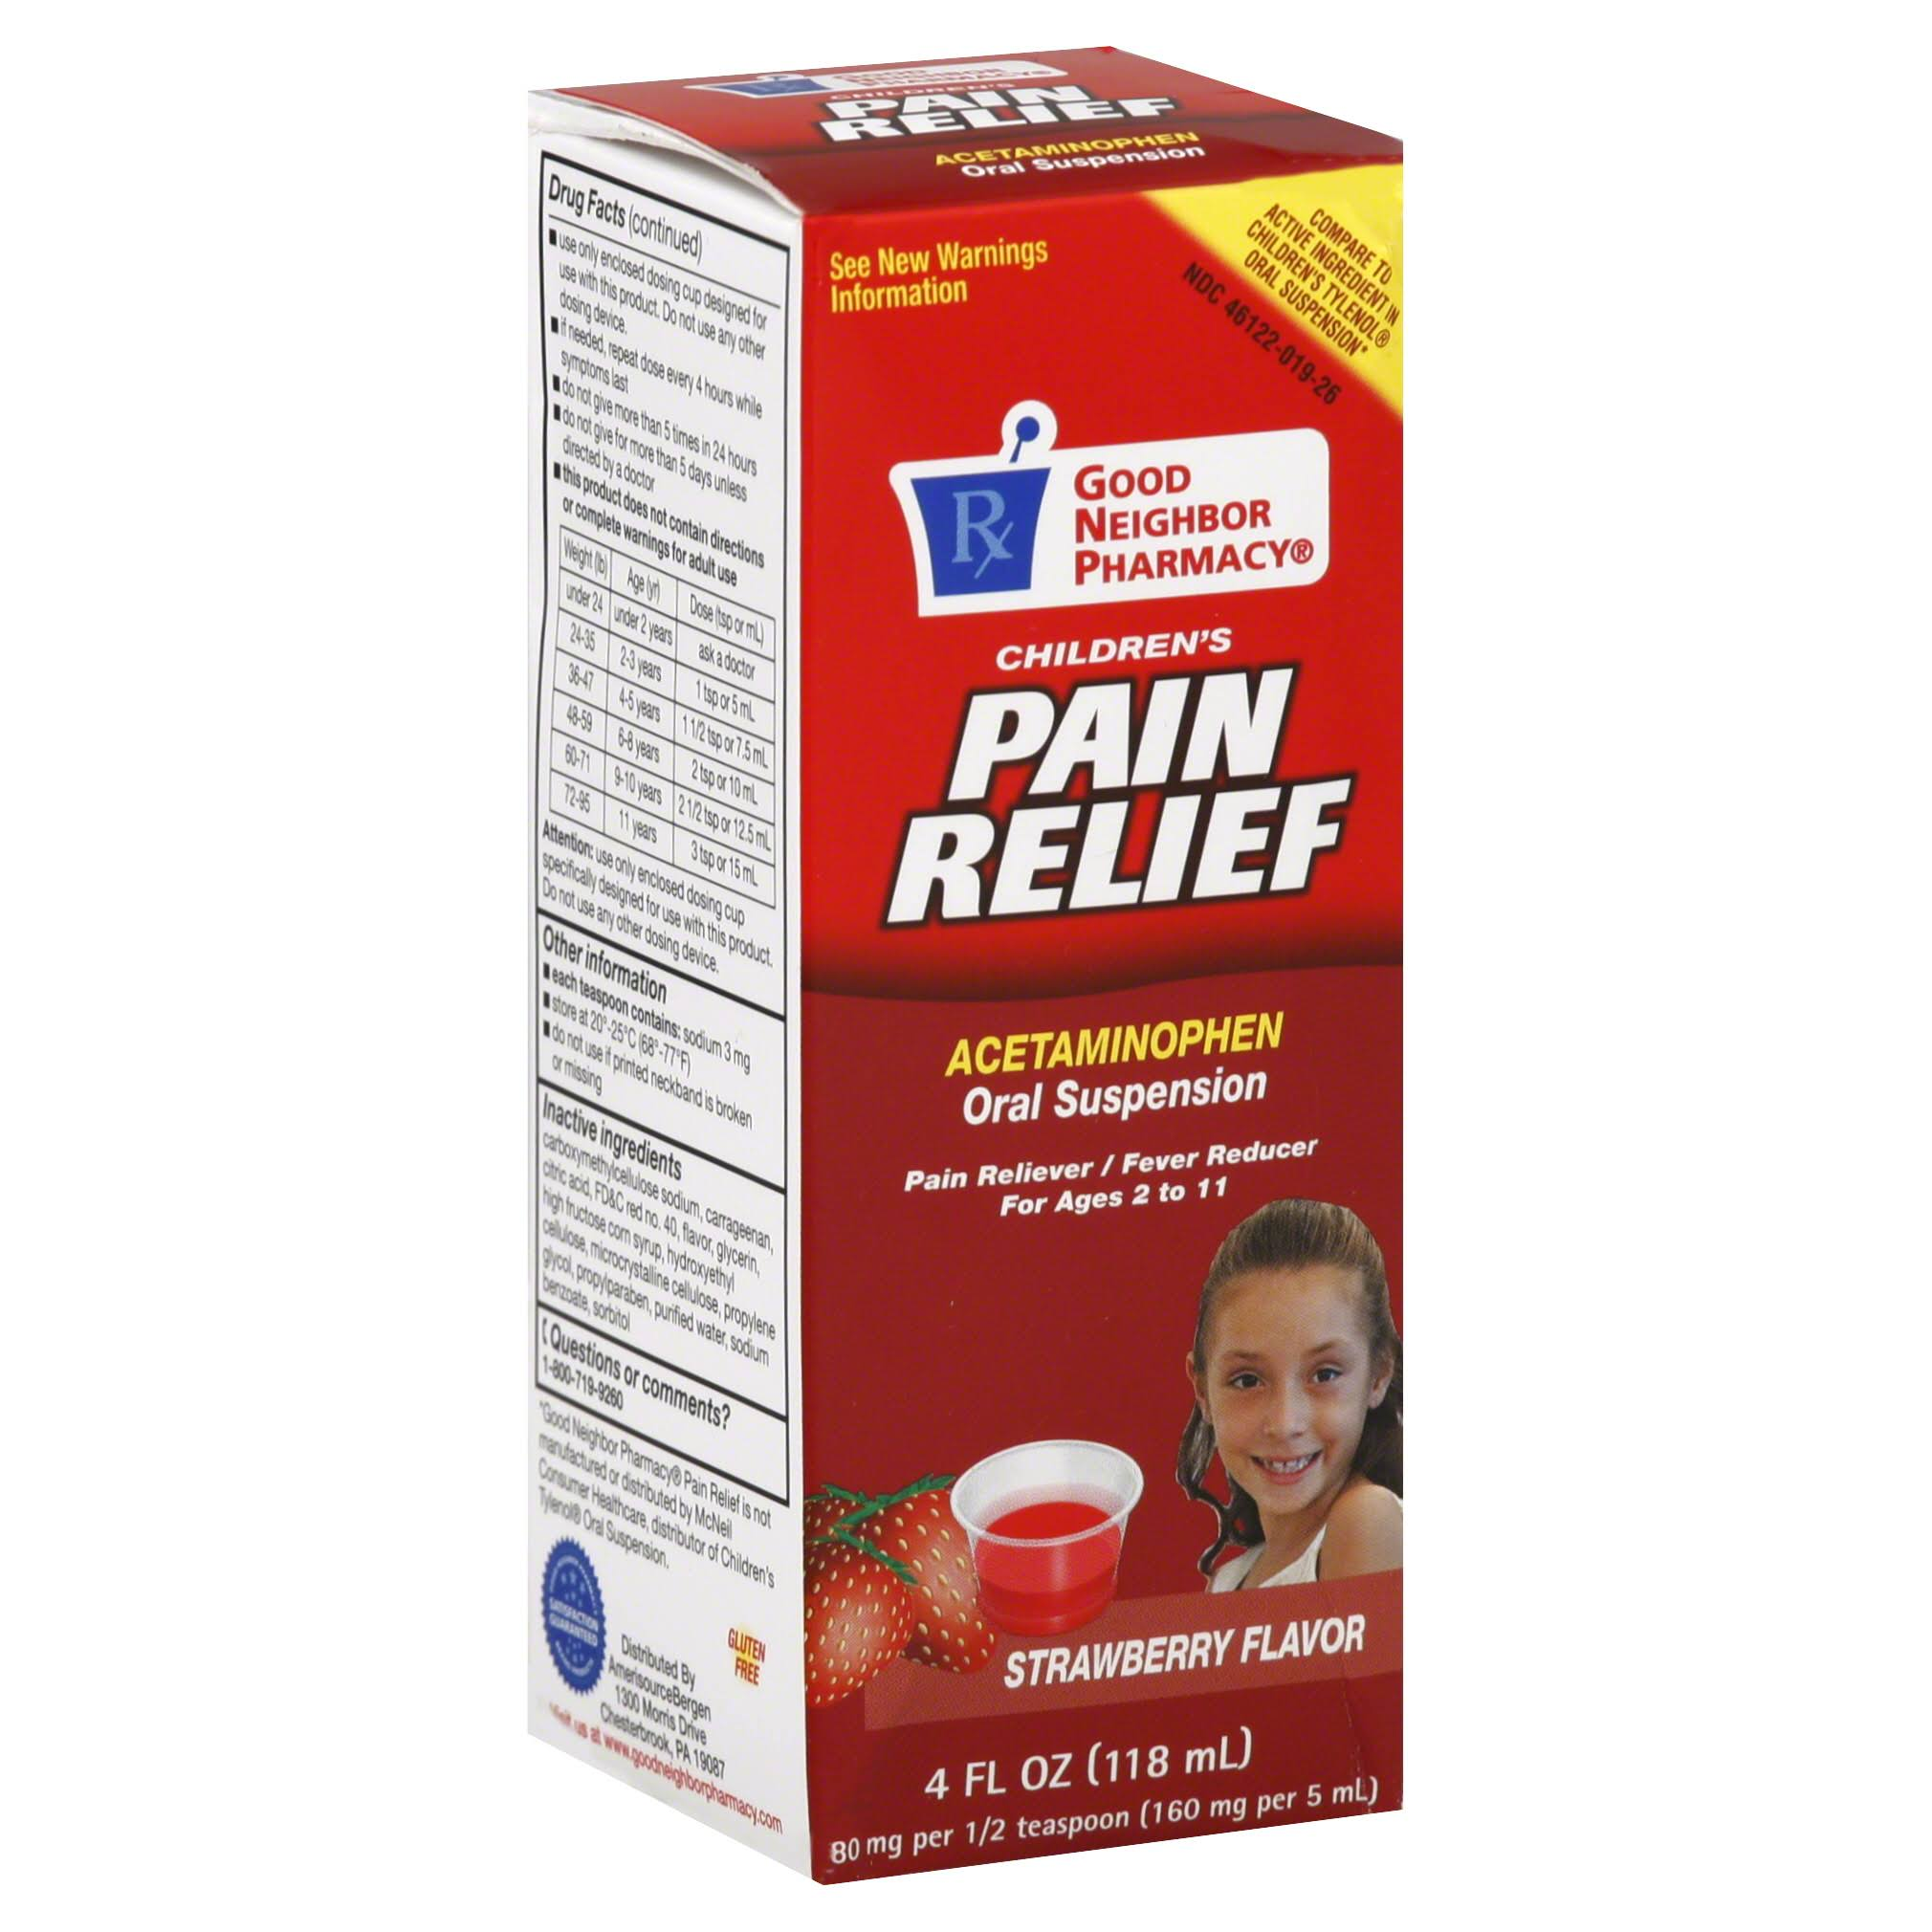 Good Neighbor Pharmacy Acetaminophen Oral Suspension